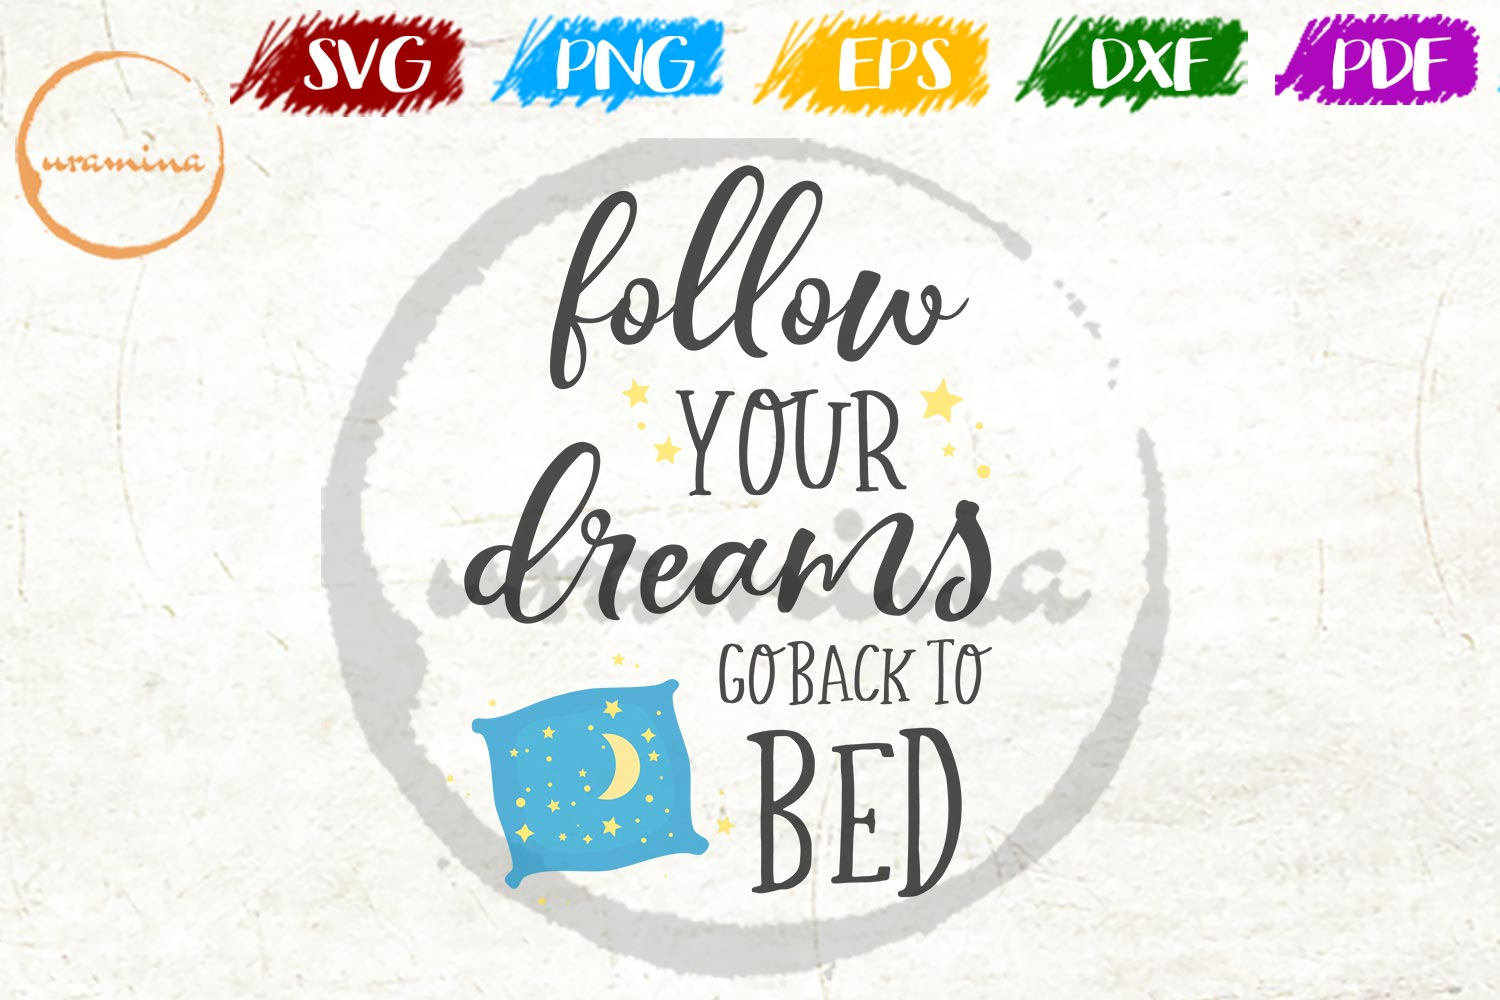 Download Free Follow Your Dreams Go Back To Bed Graphic By Uramina Creative for Cricut Explore, Silhouette and other cutting machines.